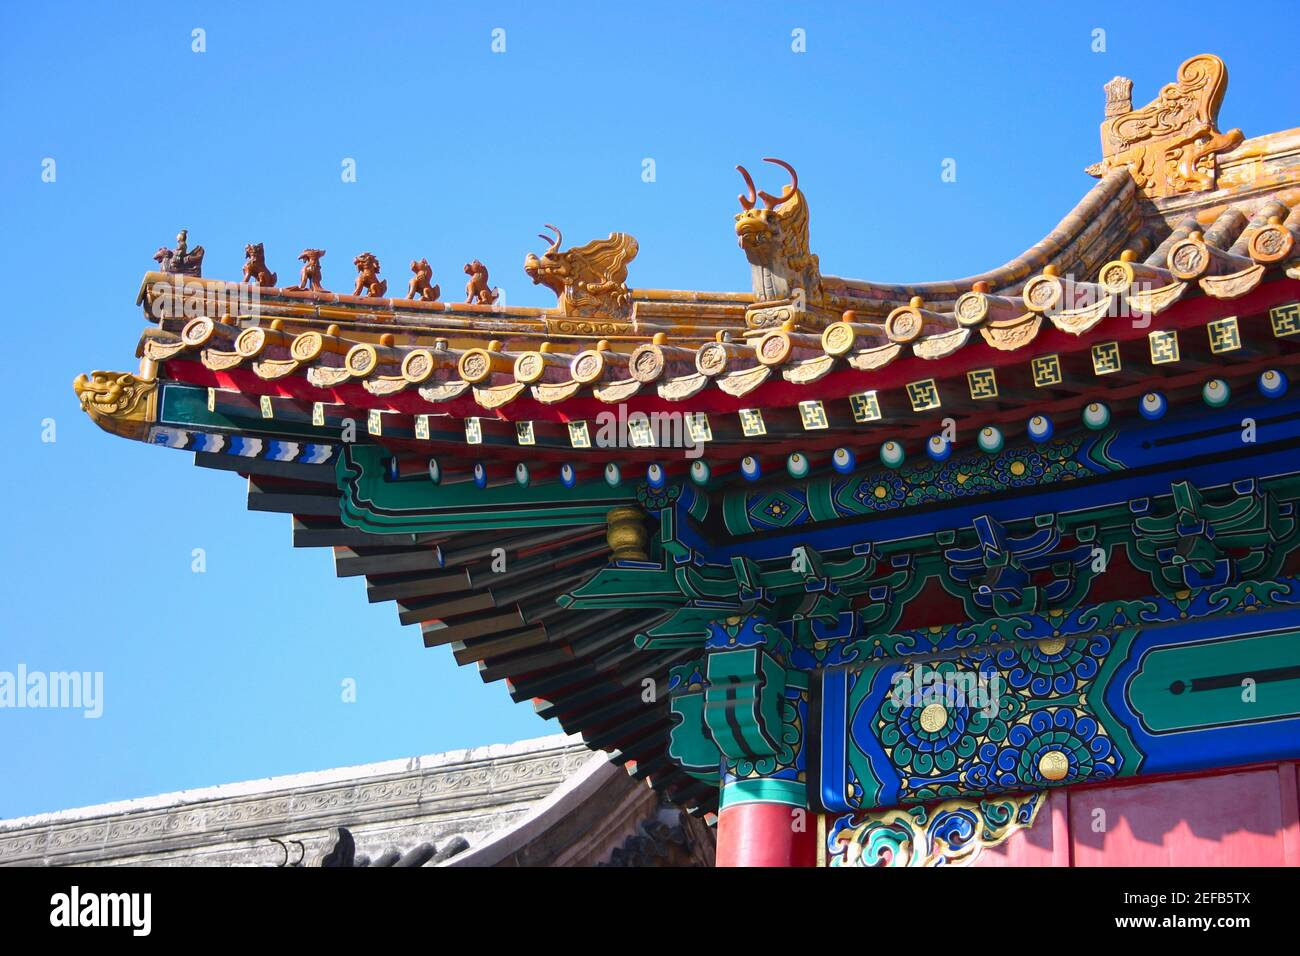 Low angle view of the roof of a palace, Forbidden City, Beijing, China Stock Photo